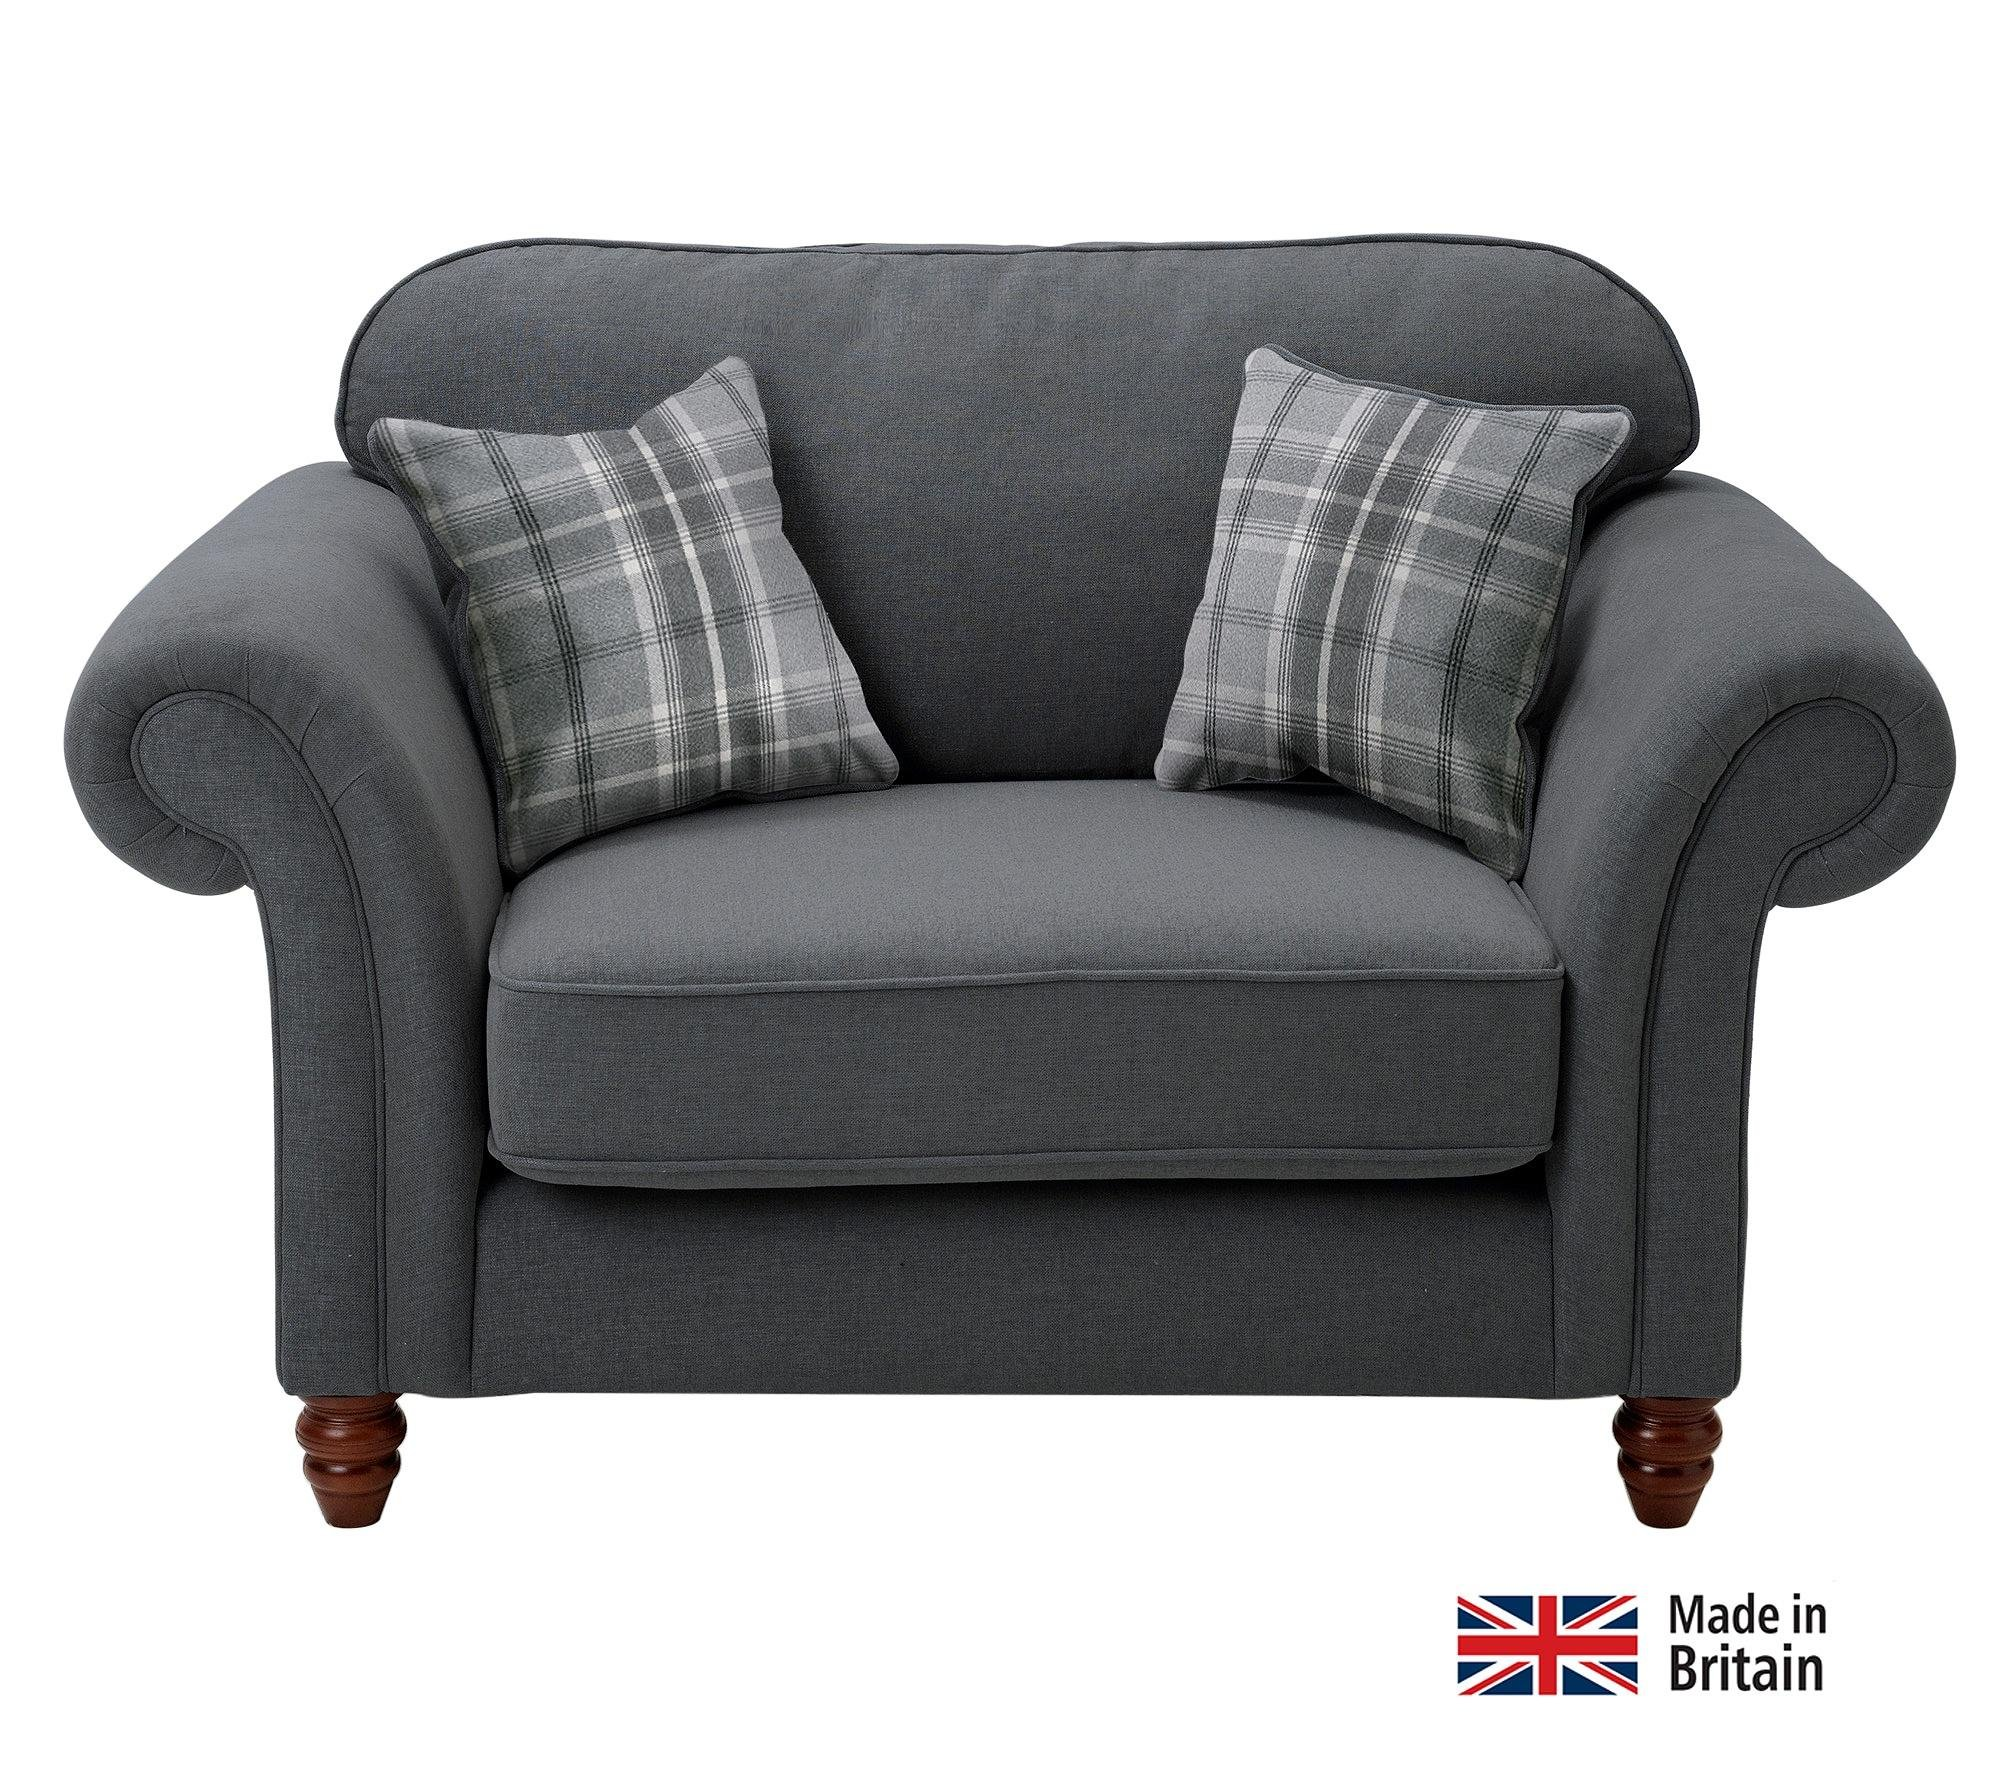 Heart Of House Windsor 2 Seater Cuddle Chair   Charcoal